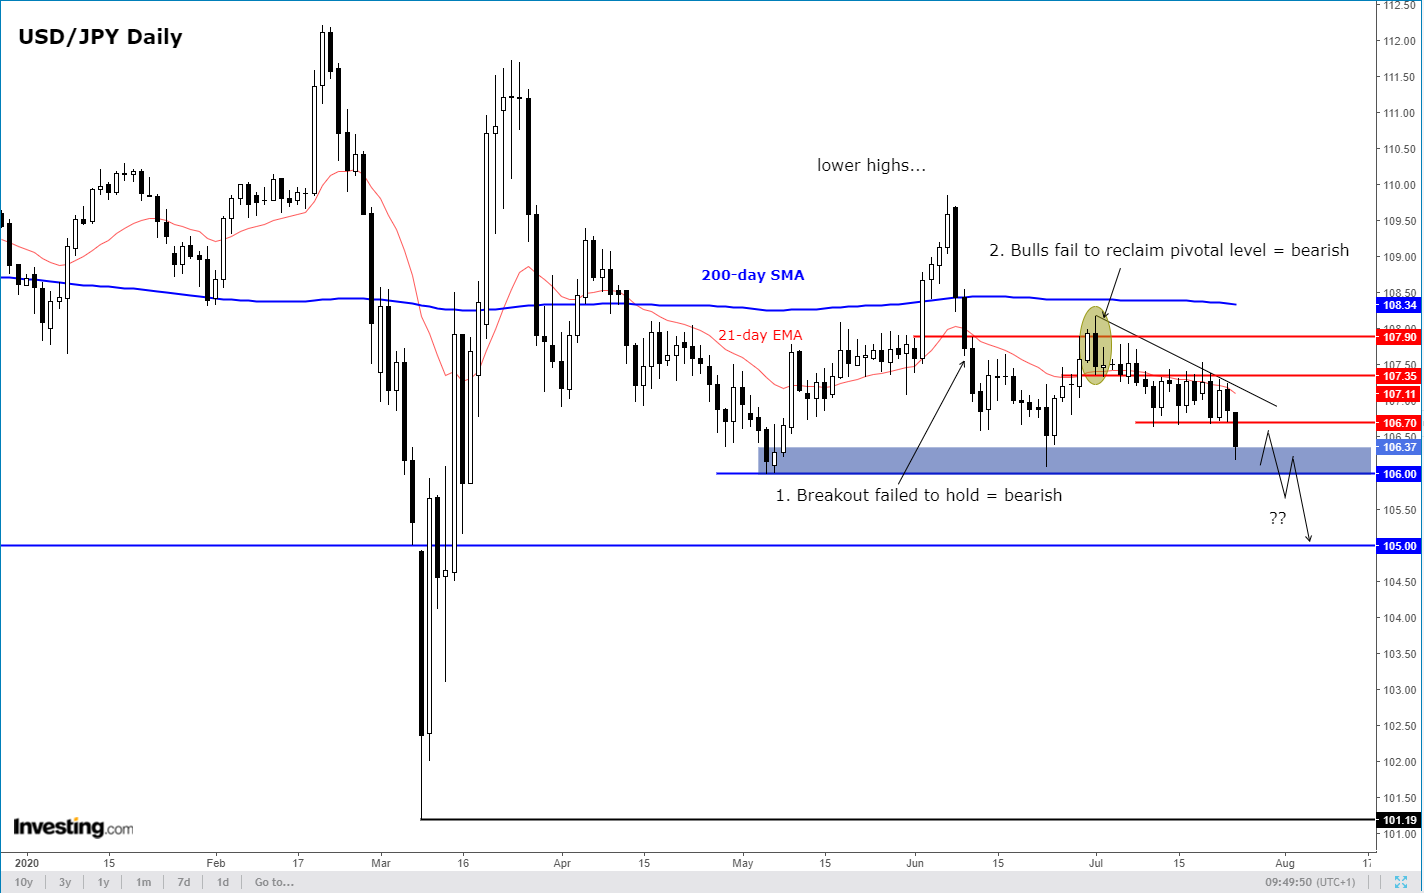 Daily USD/JPY Technicals